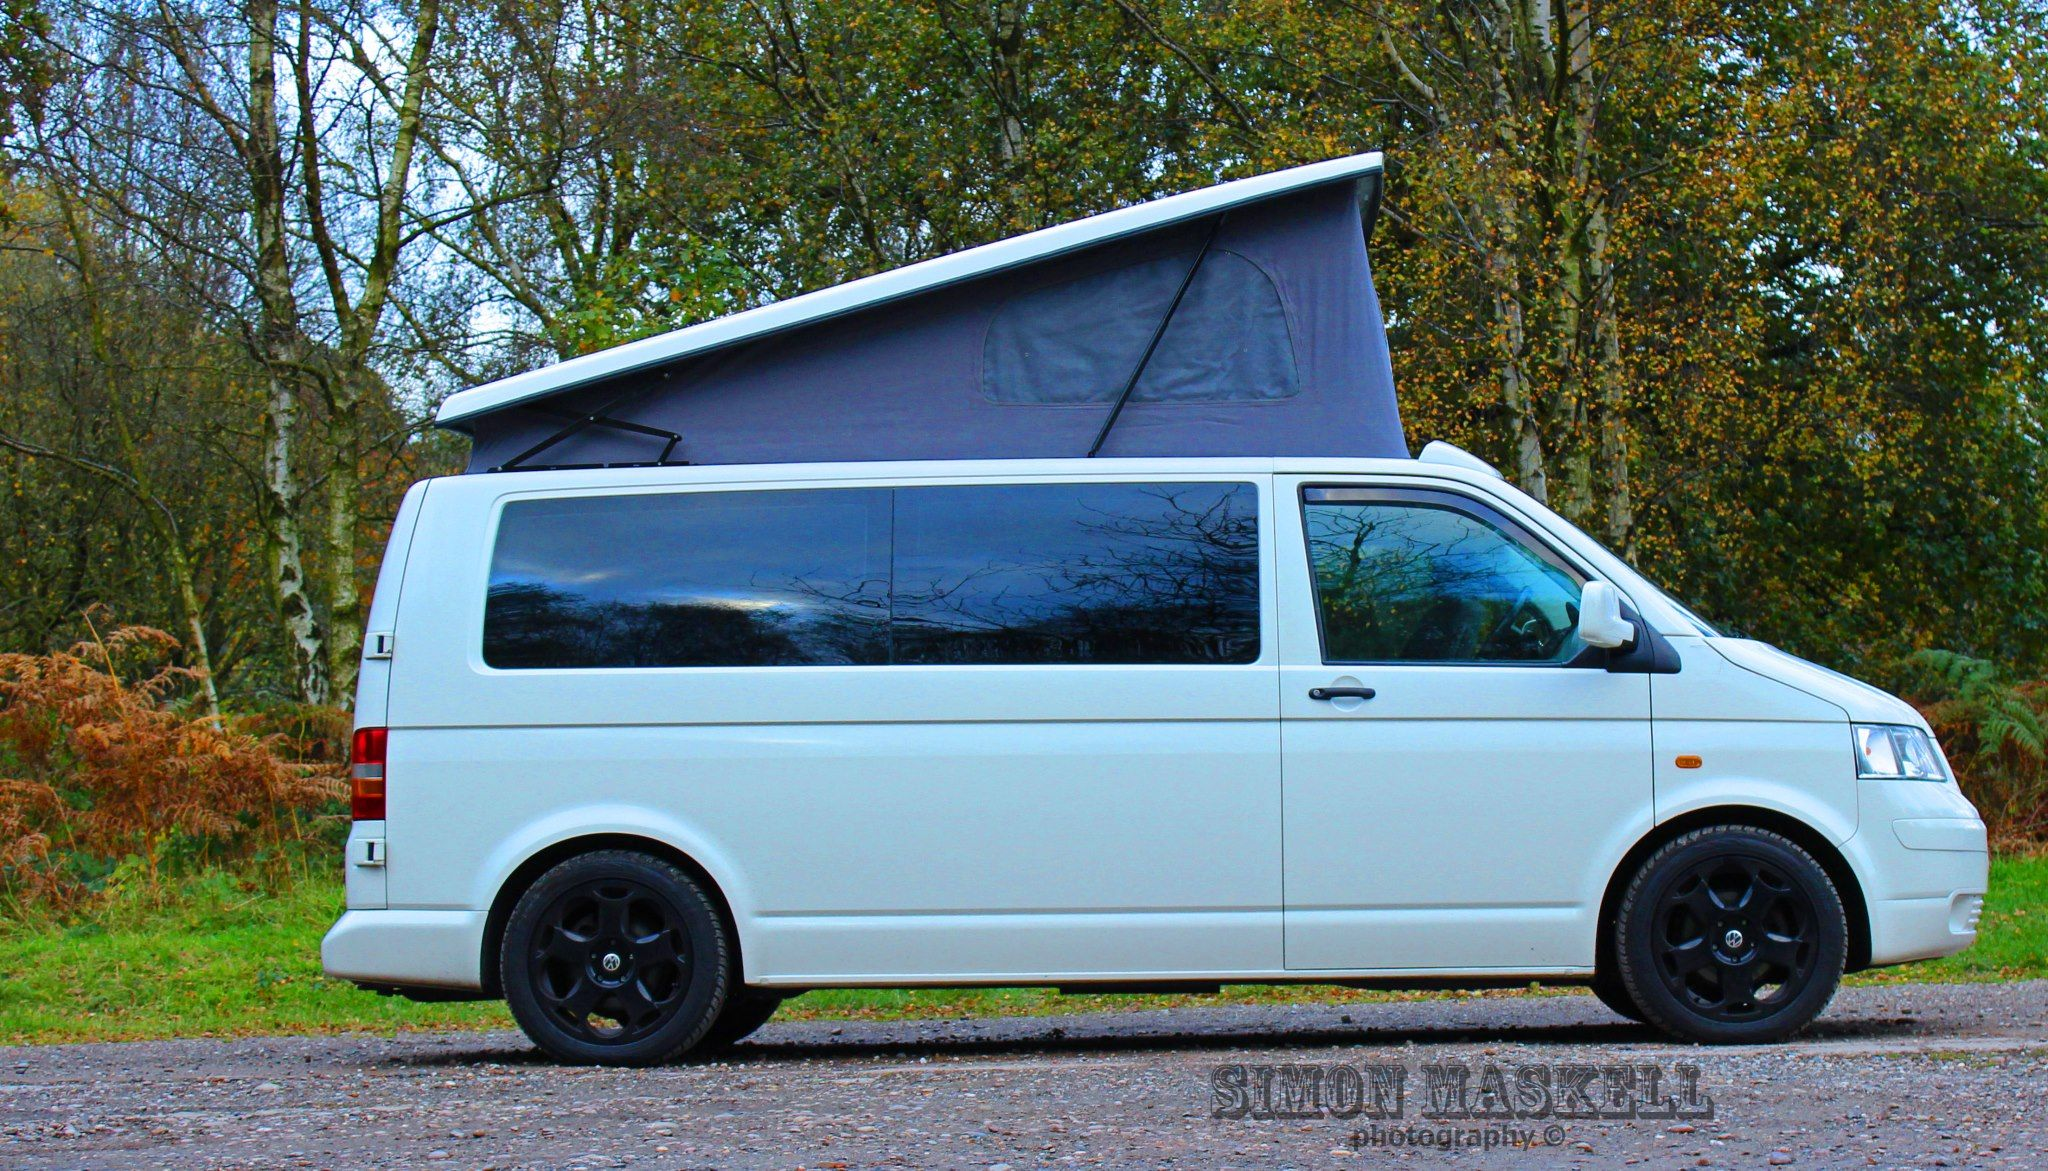 vw transporter t5 lwb conversion camper now completed. Black Bedroom Furniture Sets. Home Design Ideas